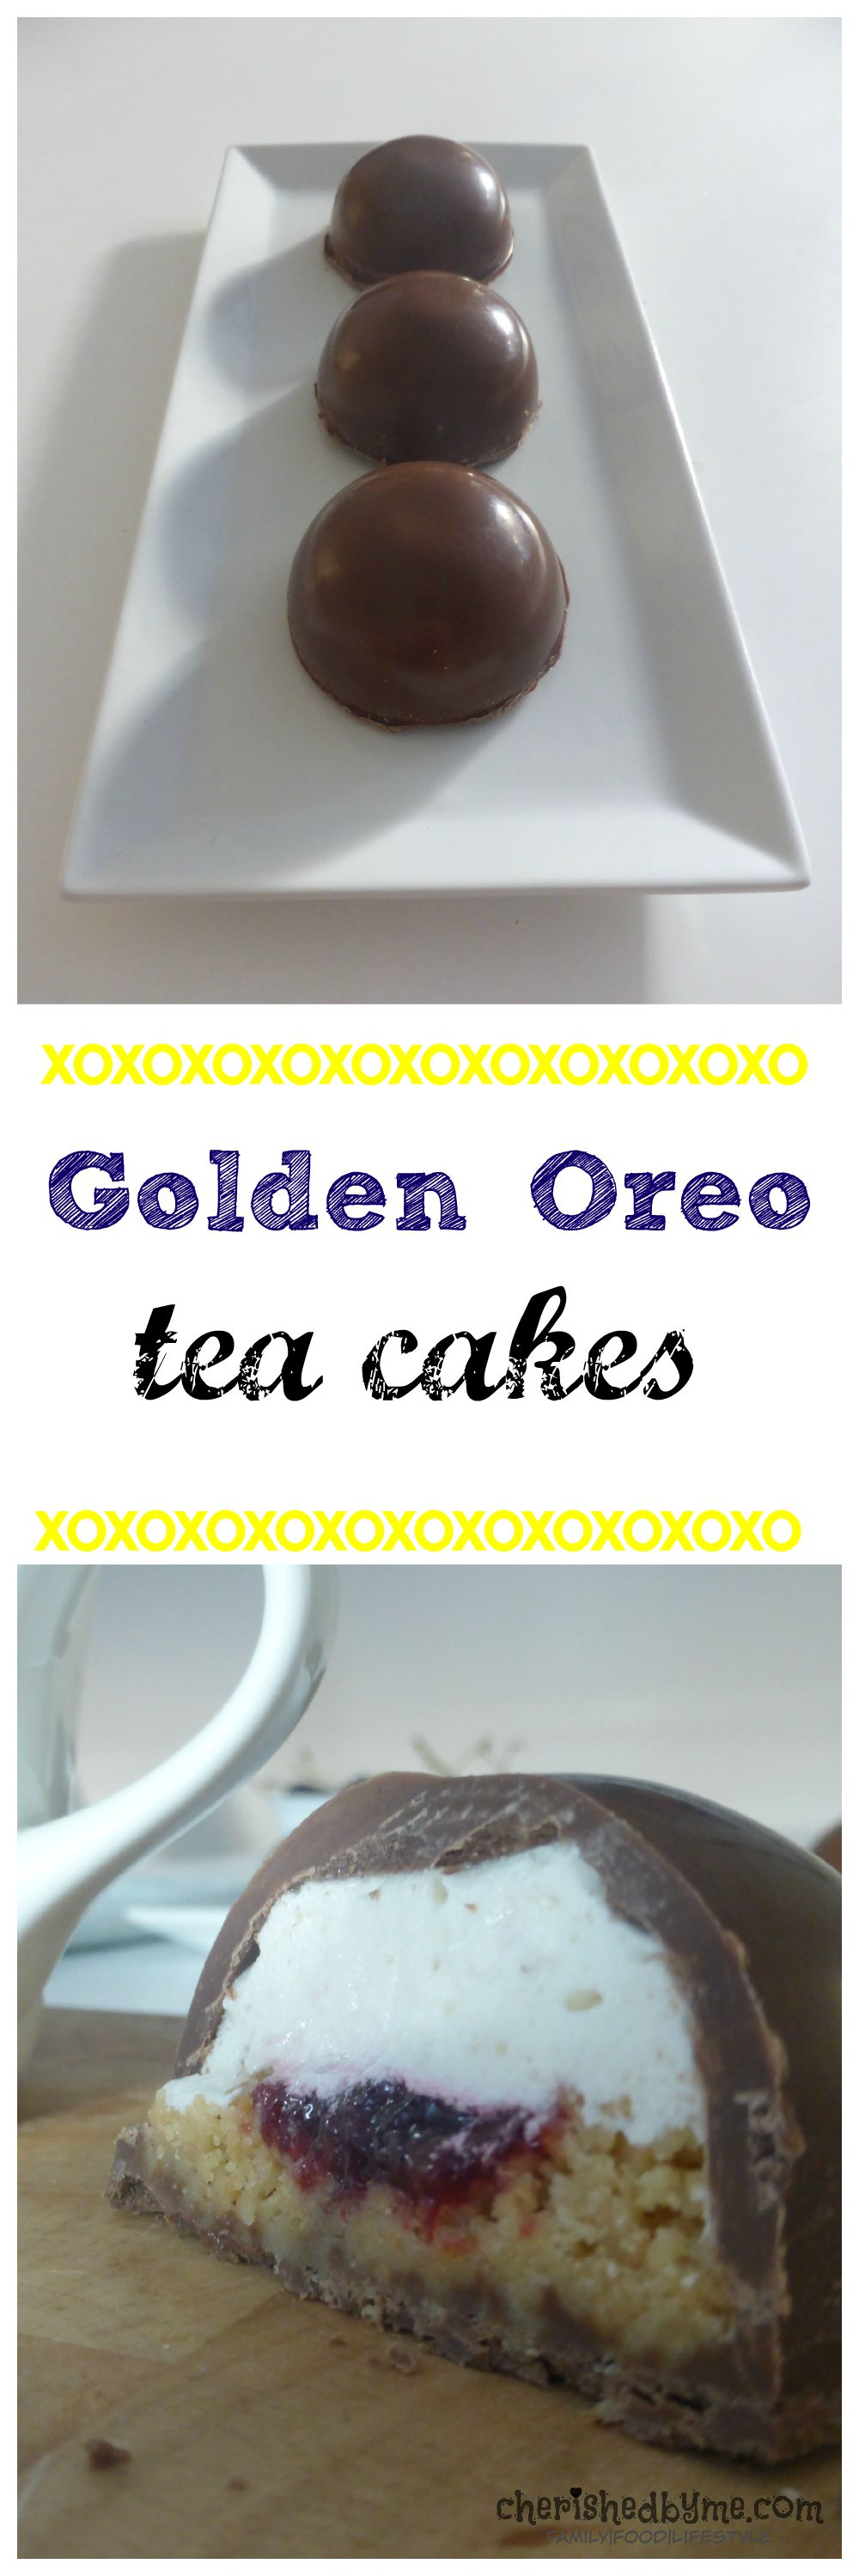 an easy recipe for tea cakes using golden Oreos